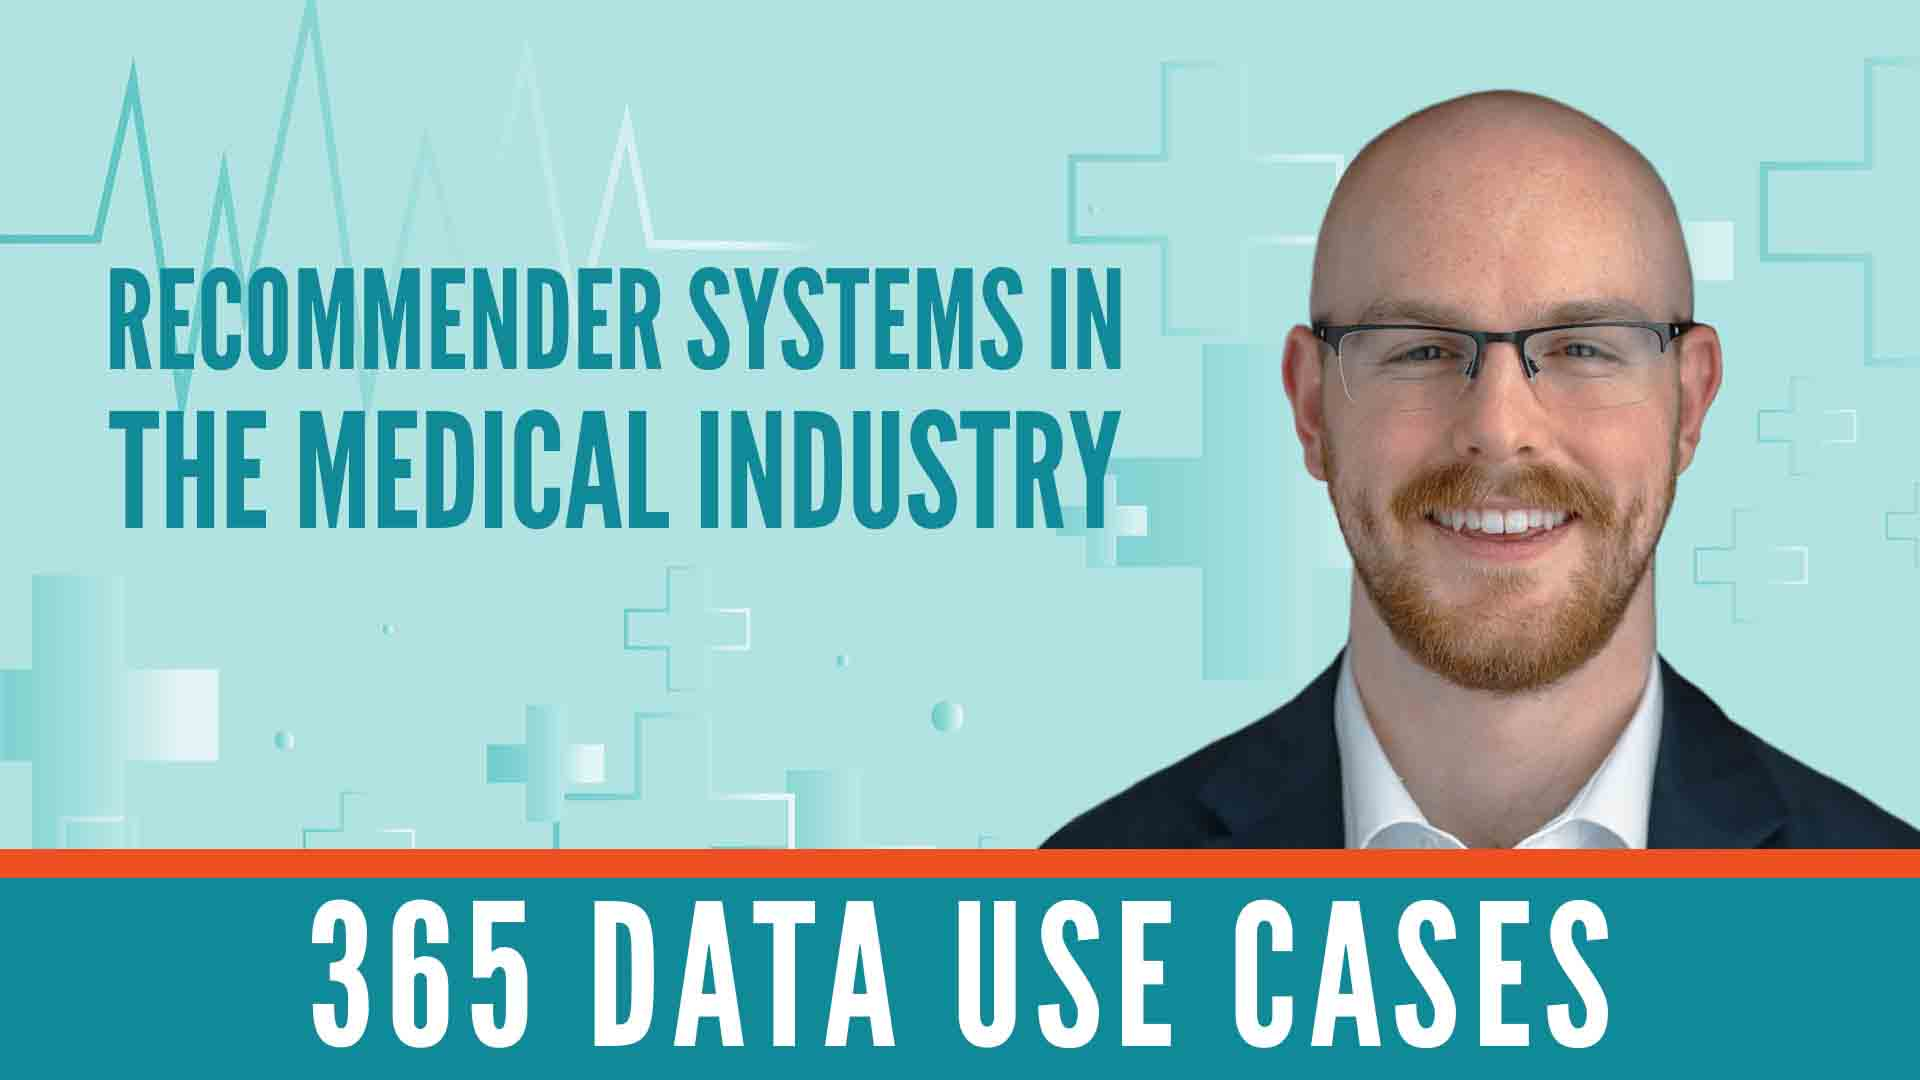 365 Data Use Cases: Recommendation Systems in the Medical Industry with Alex Freberg